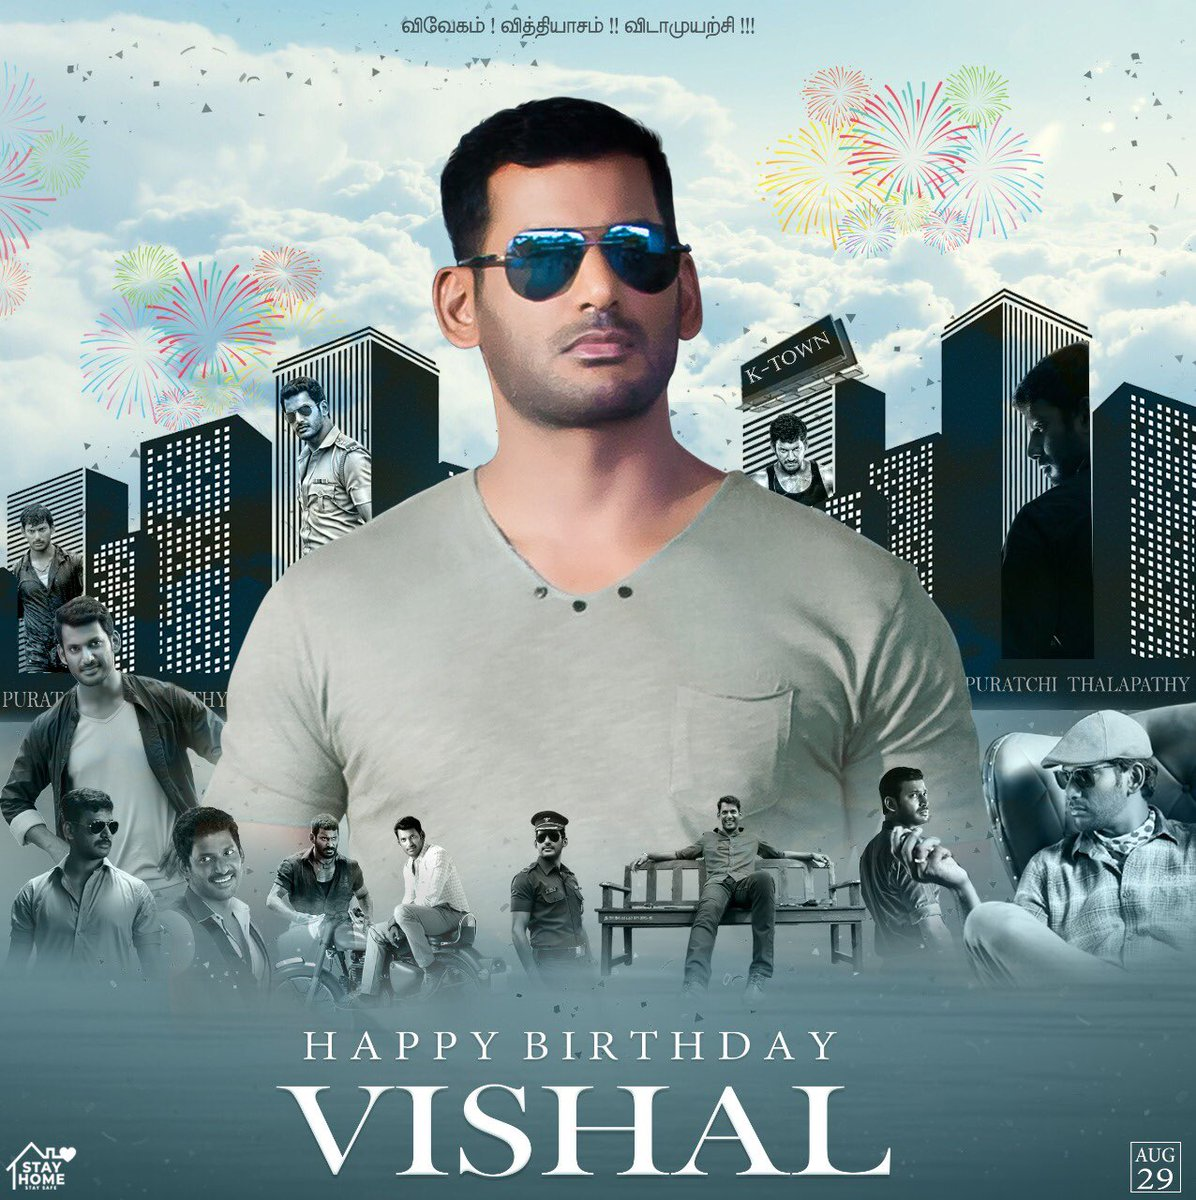 I'm happy to release the CDP for my dear @VishalKOfficial's Birthday!  Happy birthday #Vishal bro  #HBDVishal #HappyBirthdayVishal  #VishalBdayCDP   @HariKr_official @VffVishal @johnsoncinepro @saravanaspb @VISHAL_SFC @baraju_SuperHit